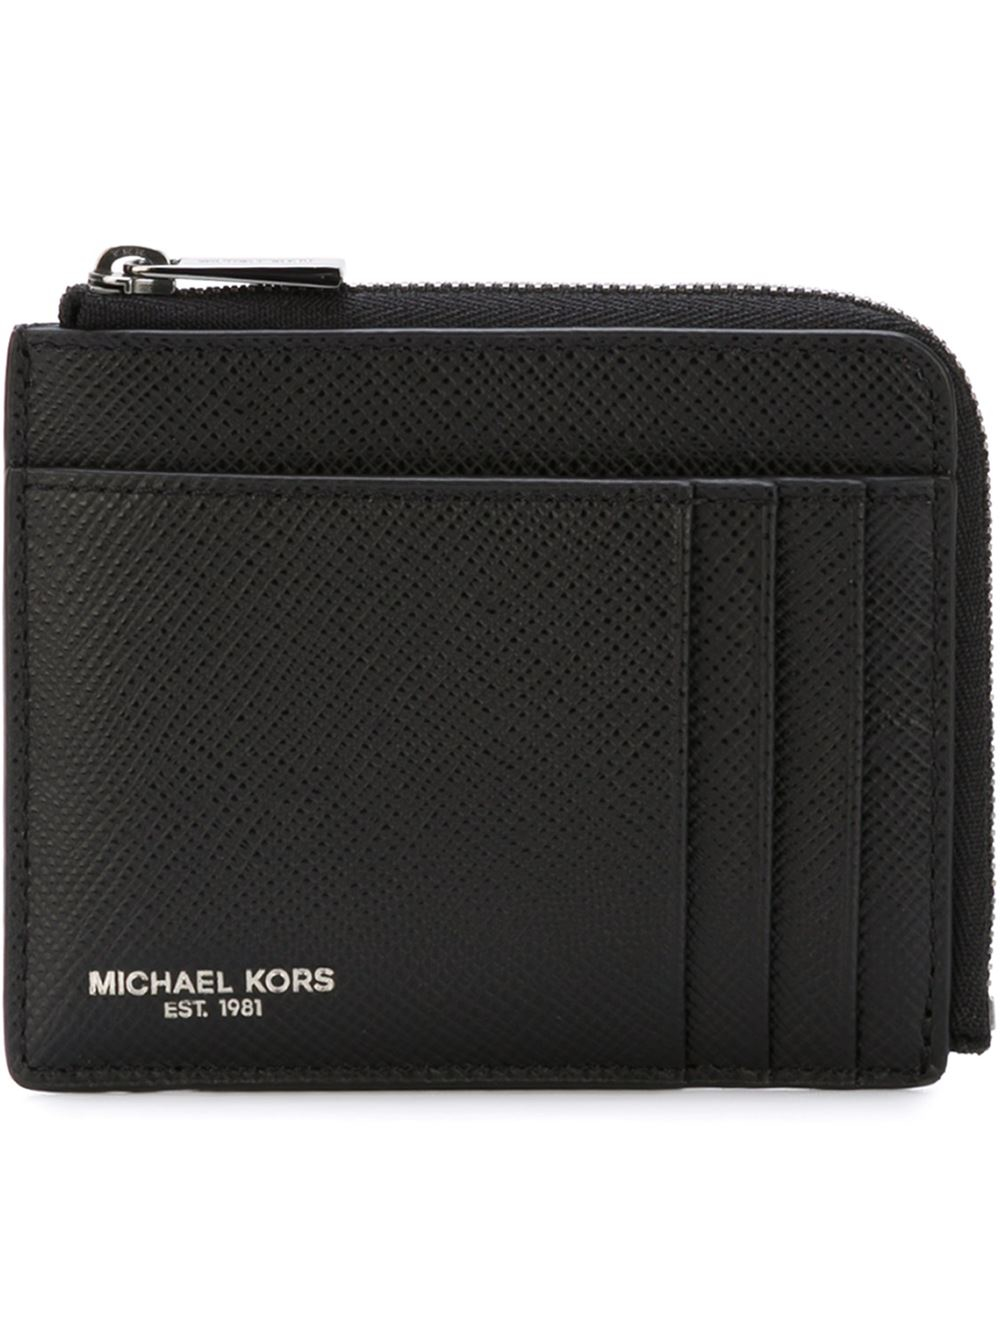 Le Meilleur Michael Kors Zip Around Wallet In Black For Men Lyst Ce Mois Ci